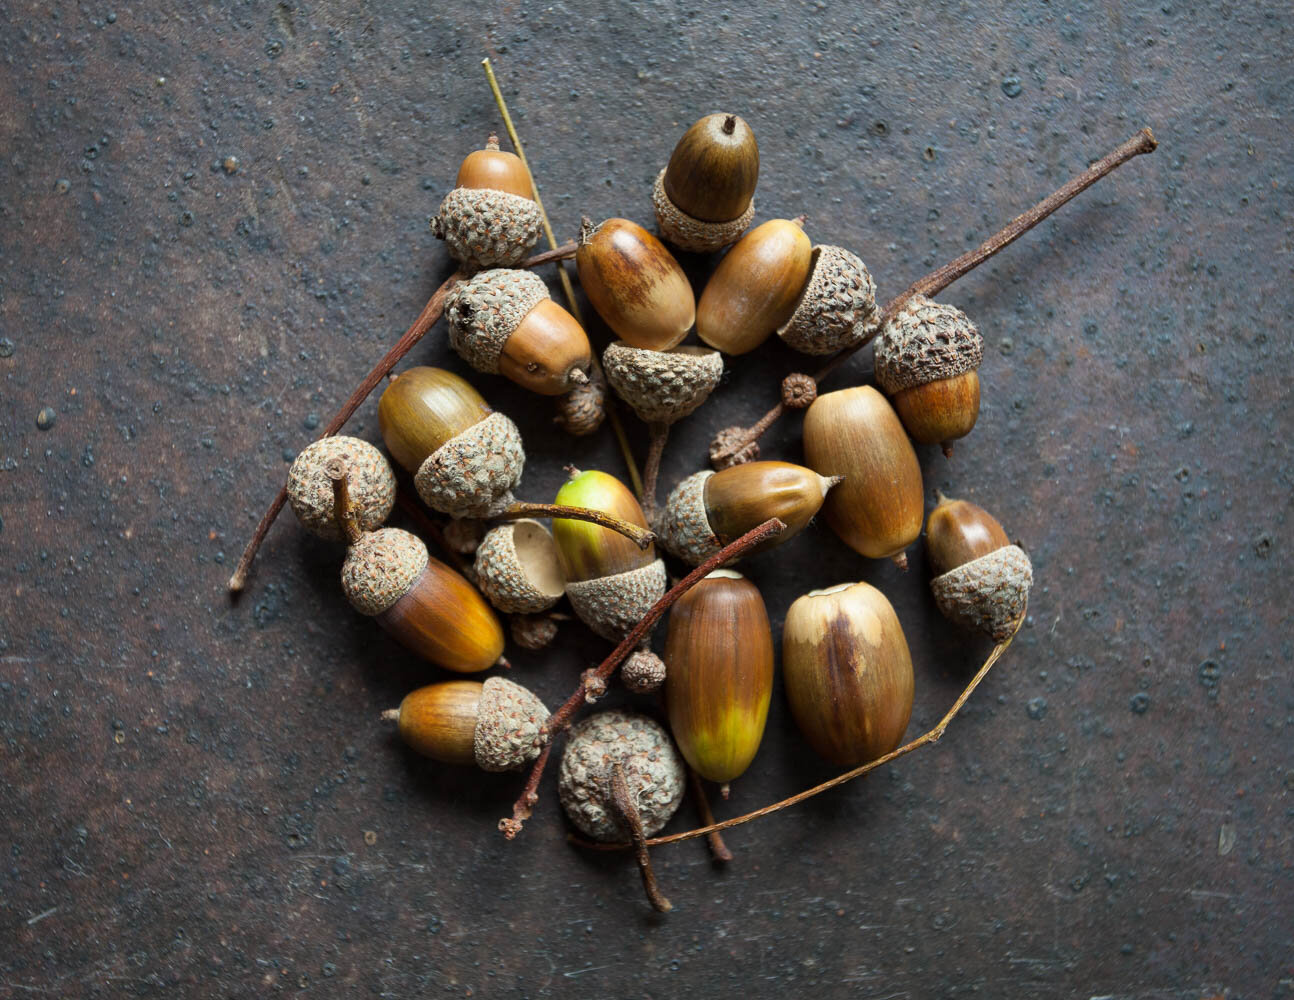 Acorns arranged on an old tile